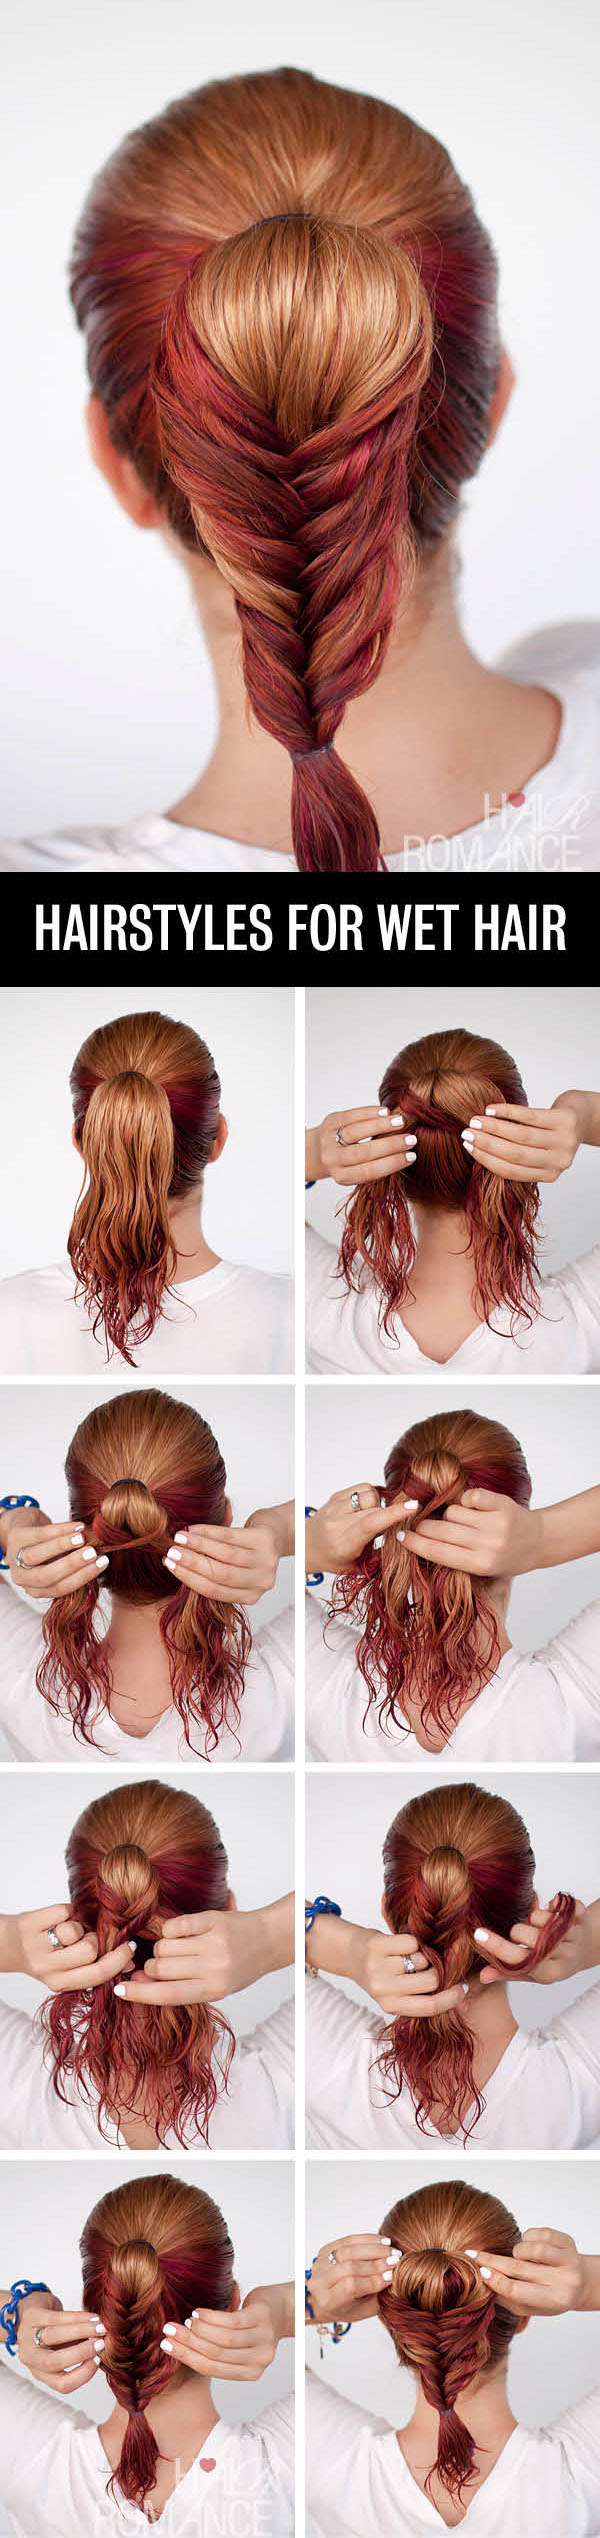 Hair-Romance-Hairstyle-tutorials-for-wet-hair-the-fishtail-ponytail